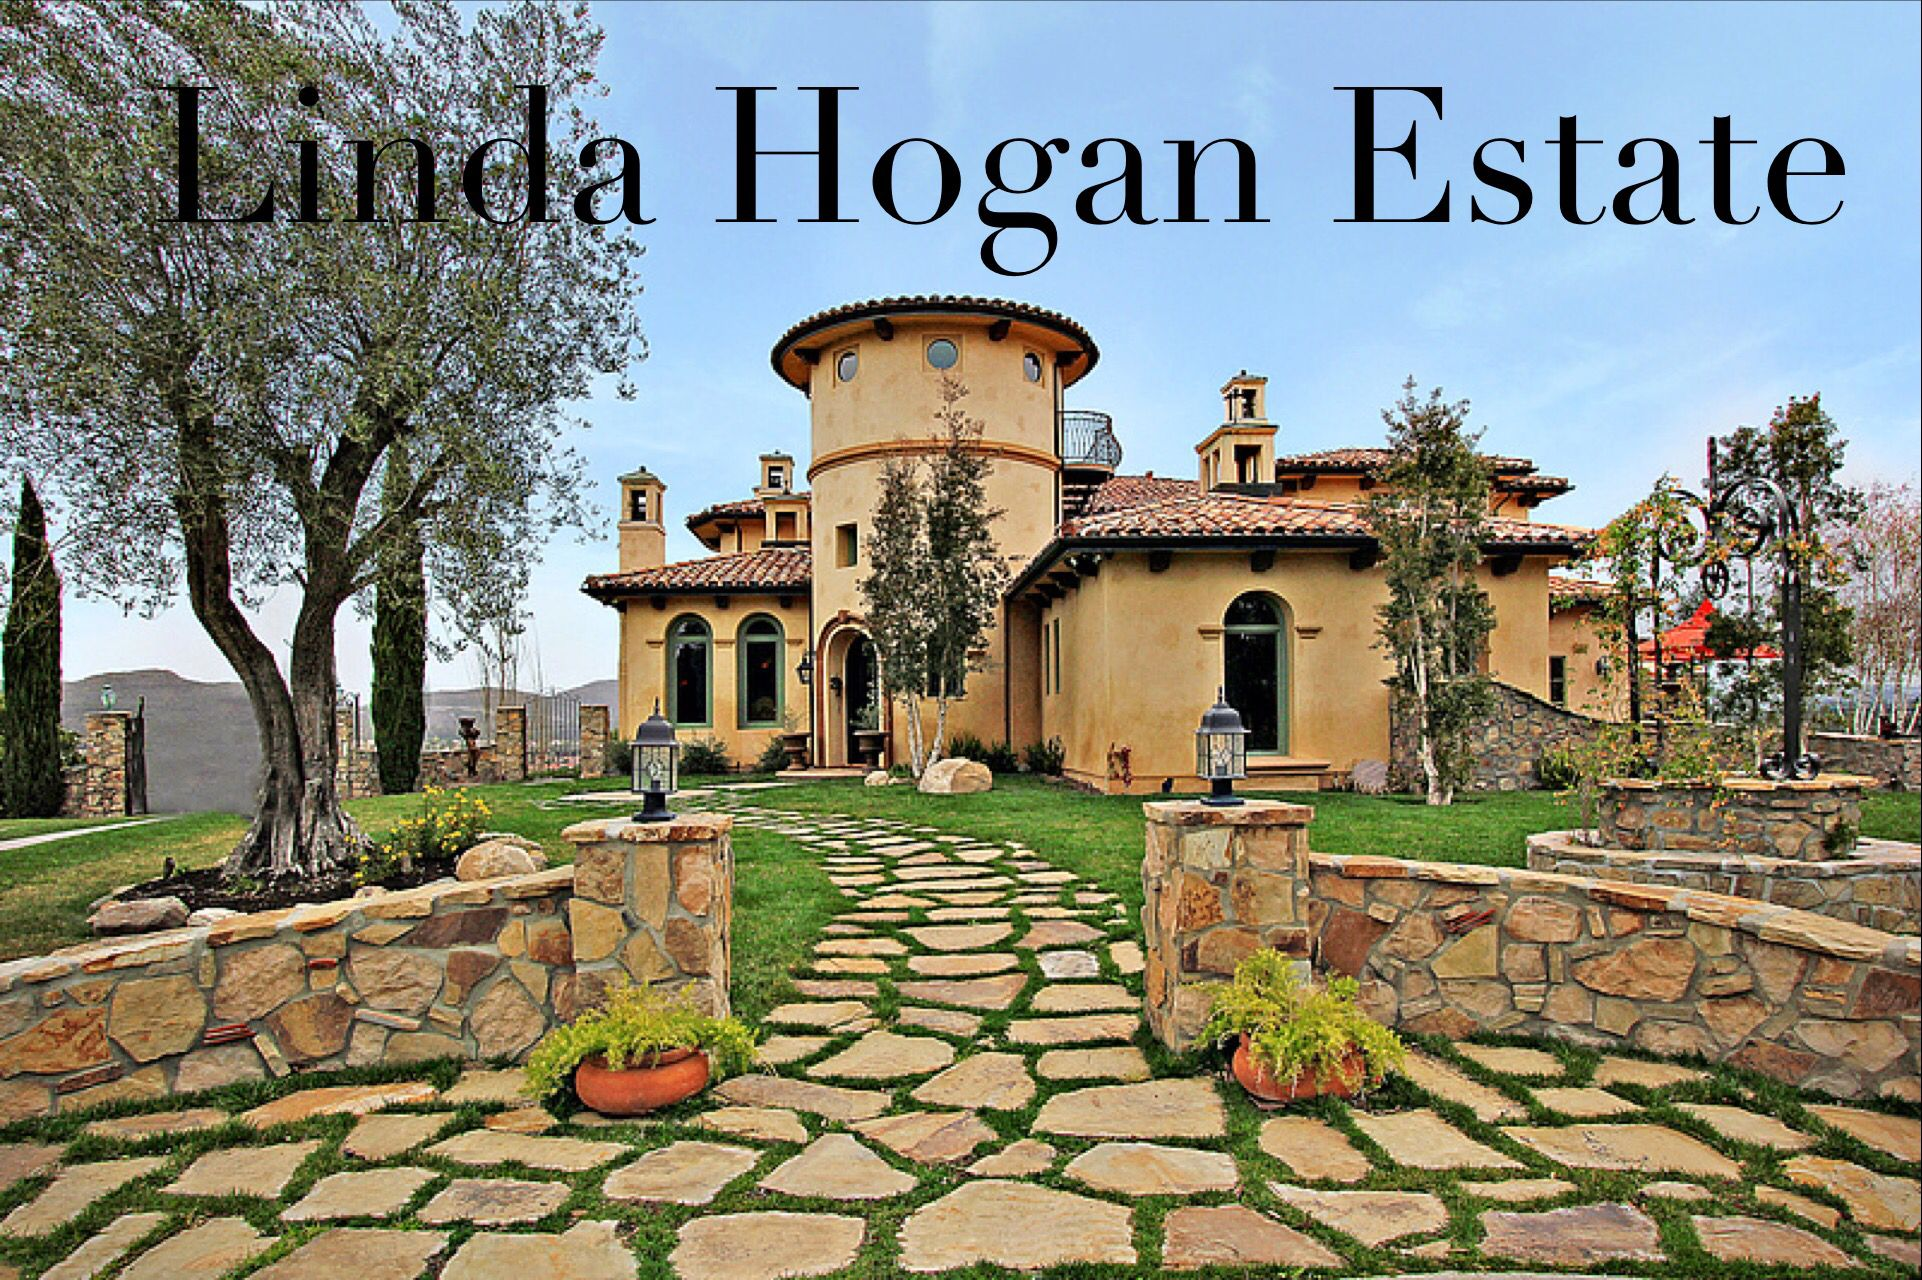 Just listed lindahogan s estate overlooking Wood Ranch Country Club